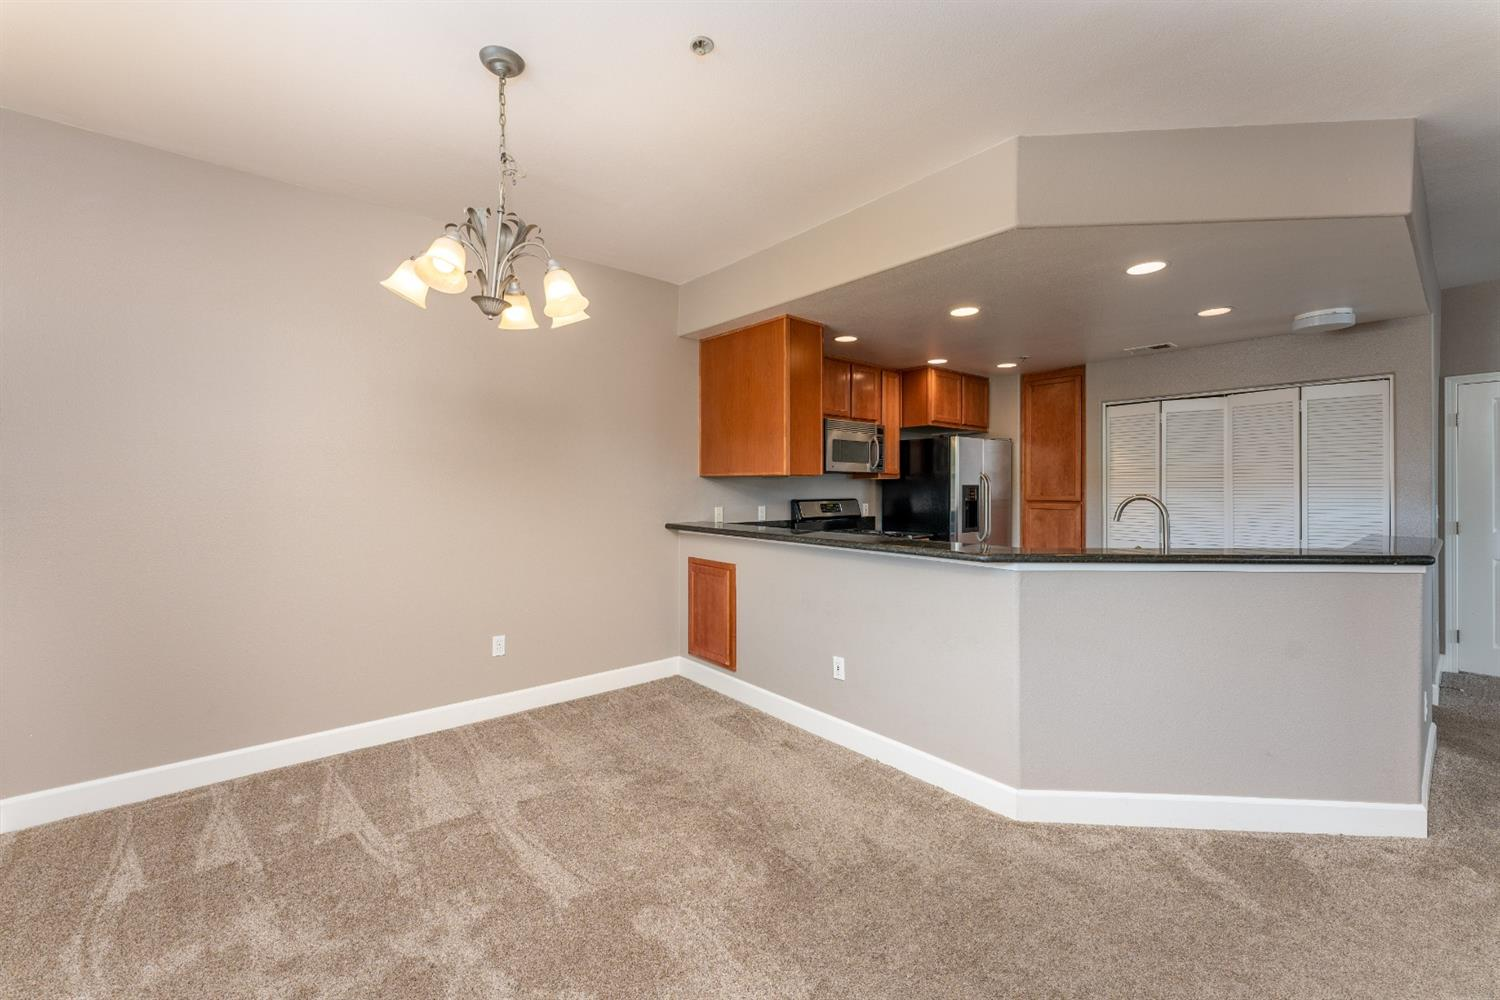 Photo 5 for Listing #221085241